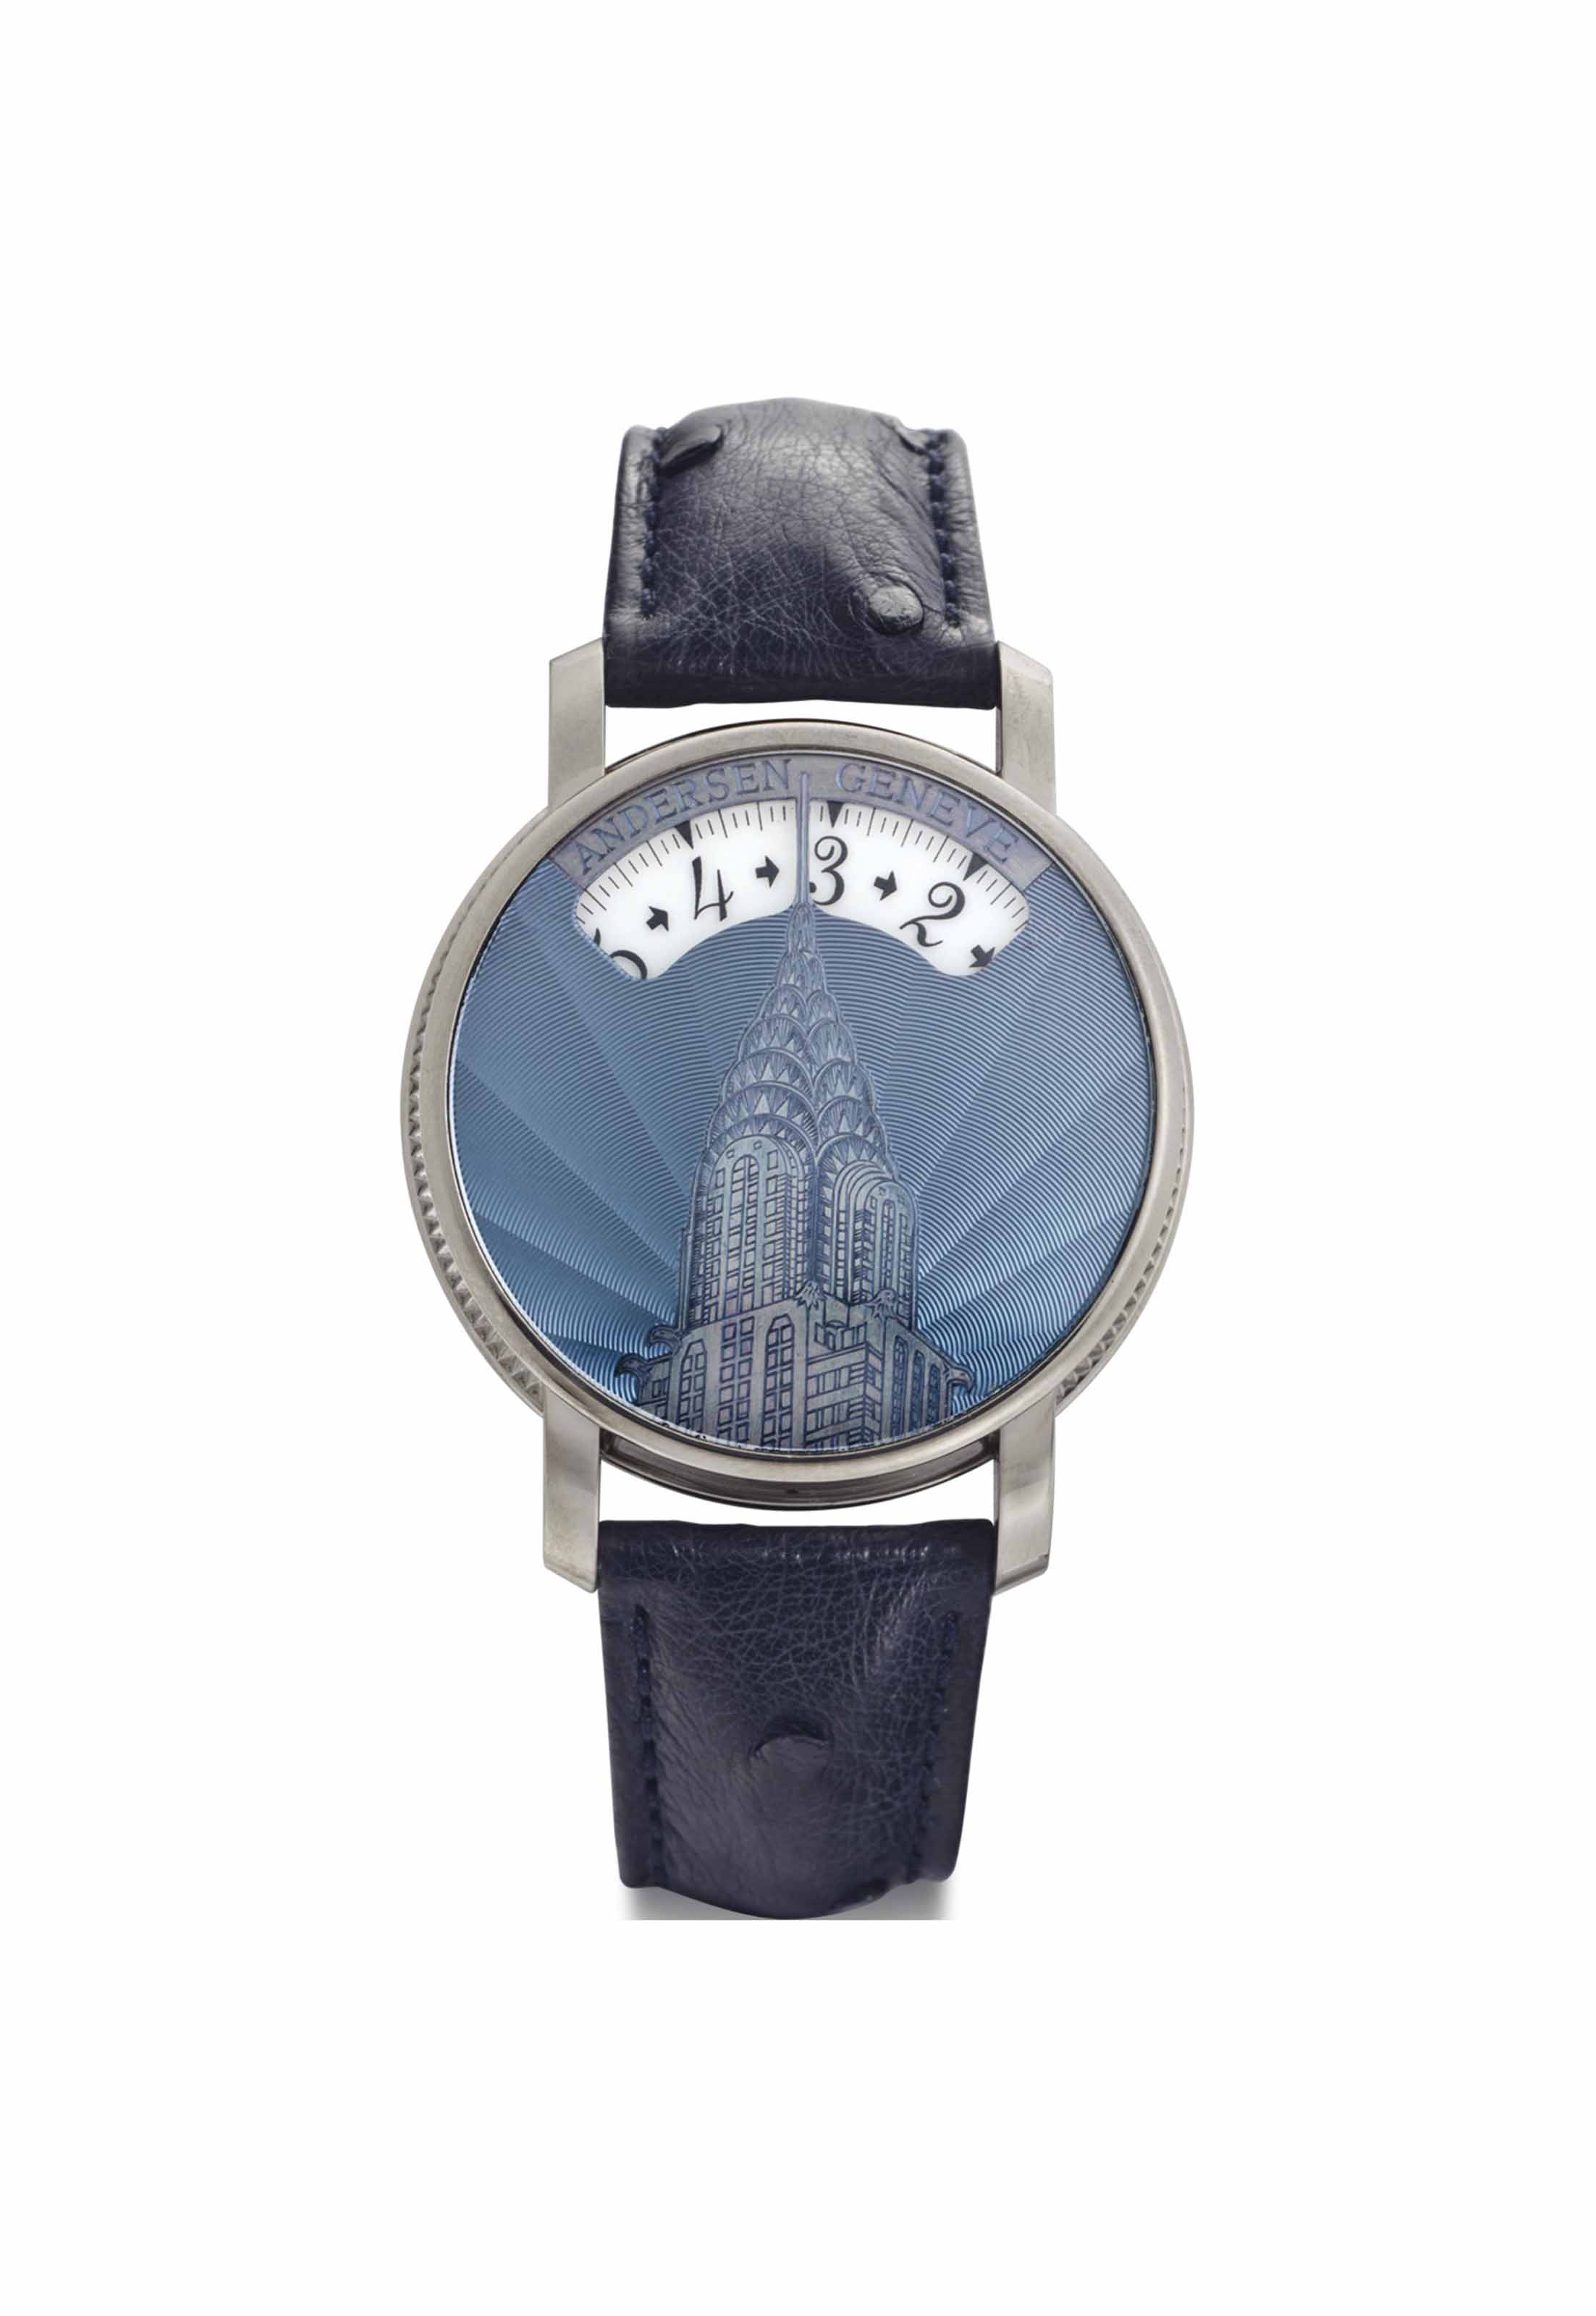 Svend Andersen. A Limited Edition and Rare 18k White Gold Automatic Wristwatch with Wandering Hours